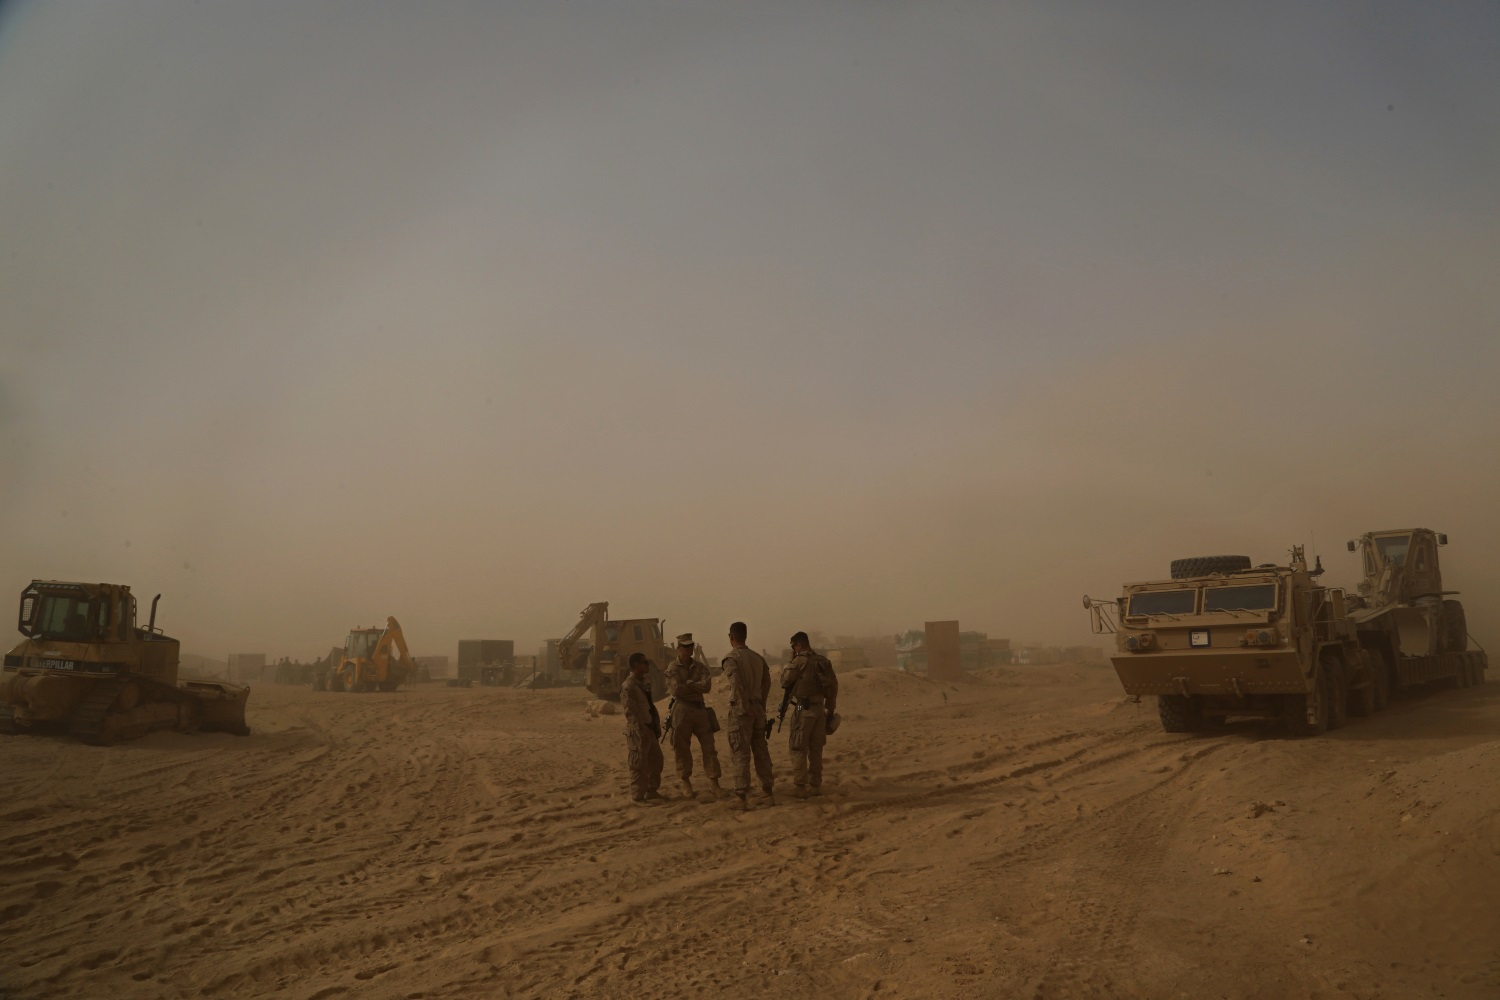 As ISIS caliphate crumbles, US builds outposts in western Iraq